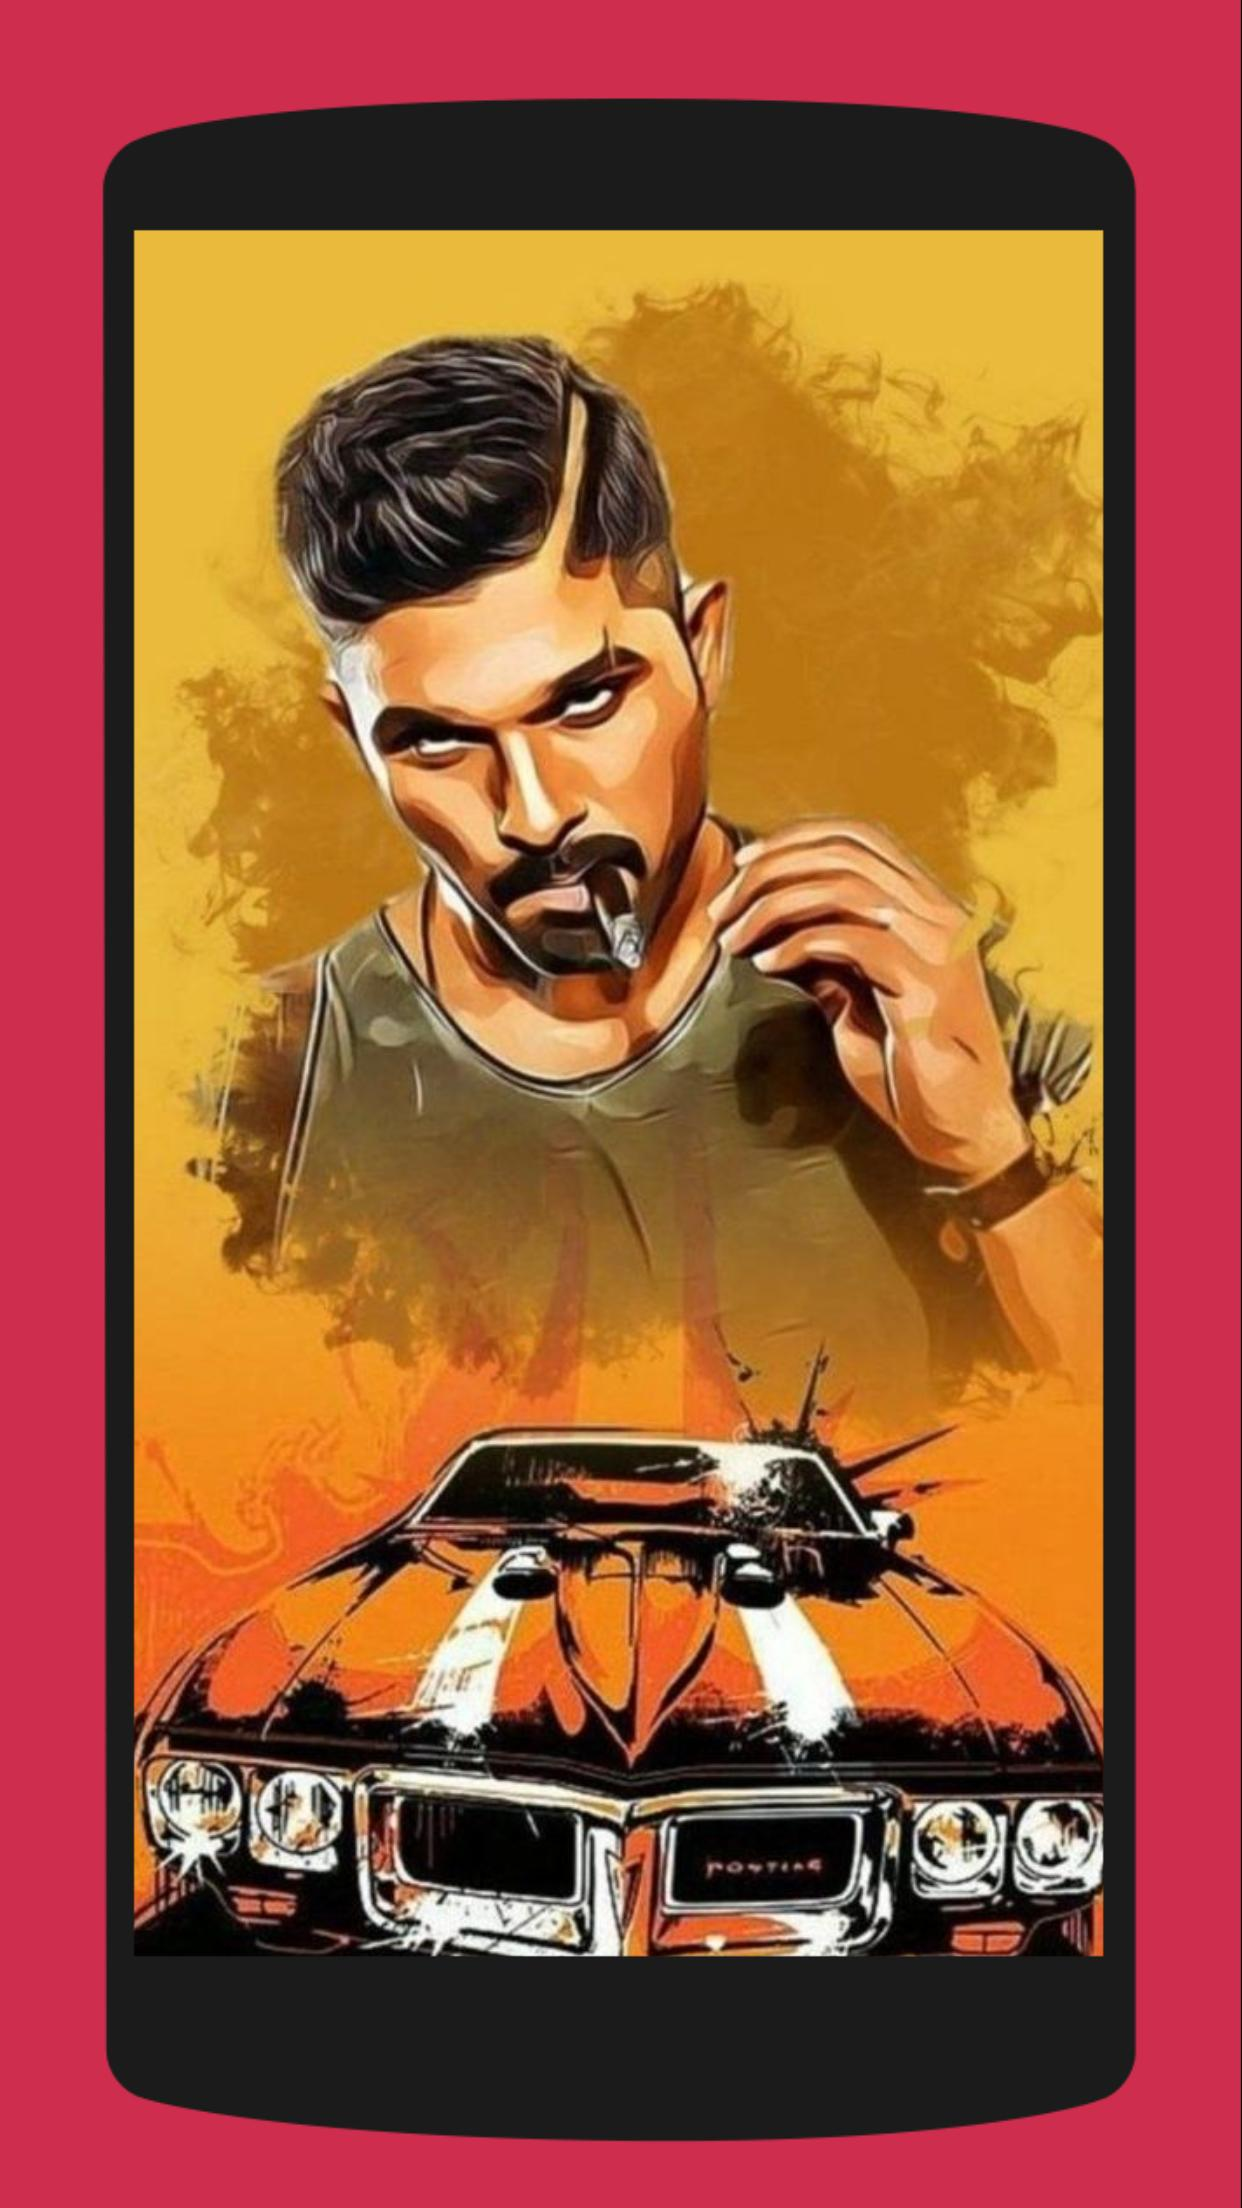 Bad Boy Wallpaper For Android Apk Download